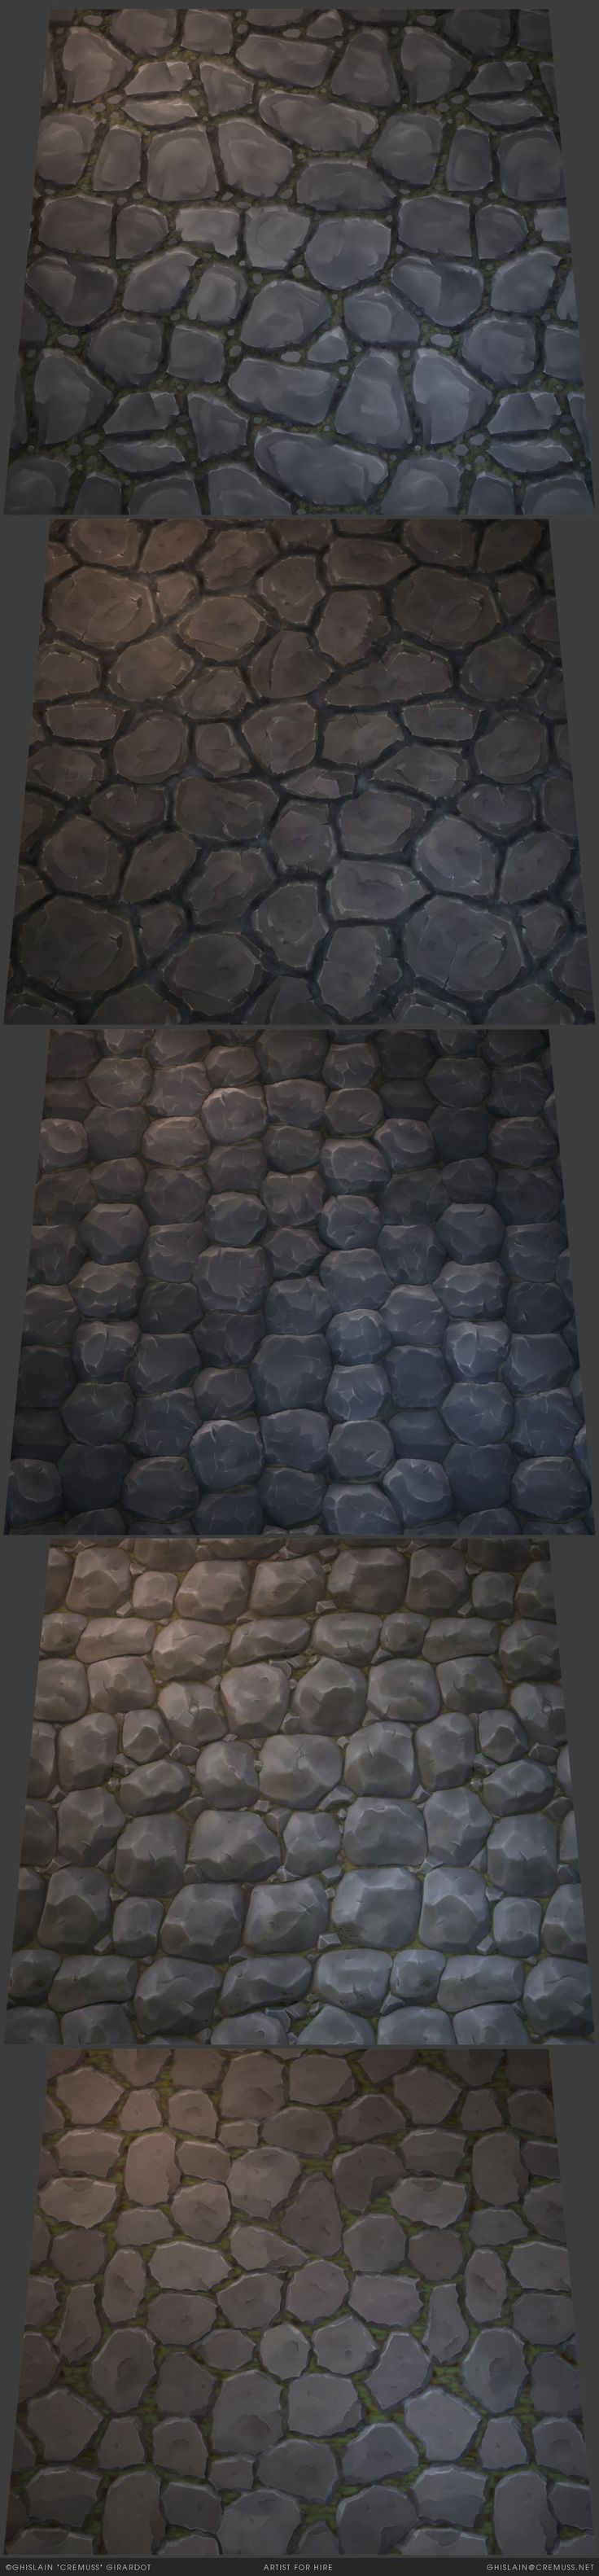 Unfinished brick wall texture for creating environment texture maps - Handpainted Stylized Rocks Textures Available On Sale On The Unity Asset Store